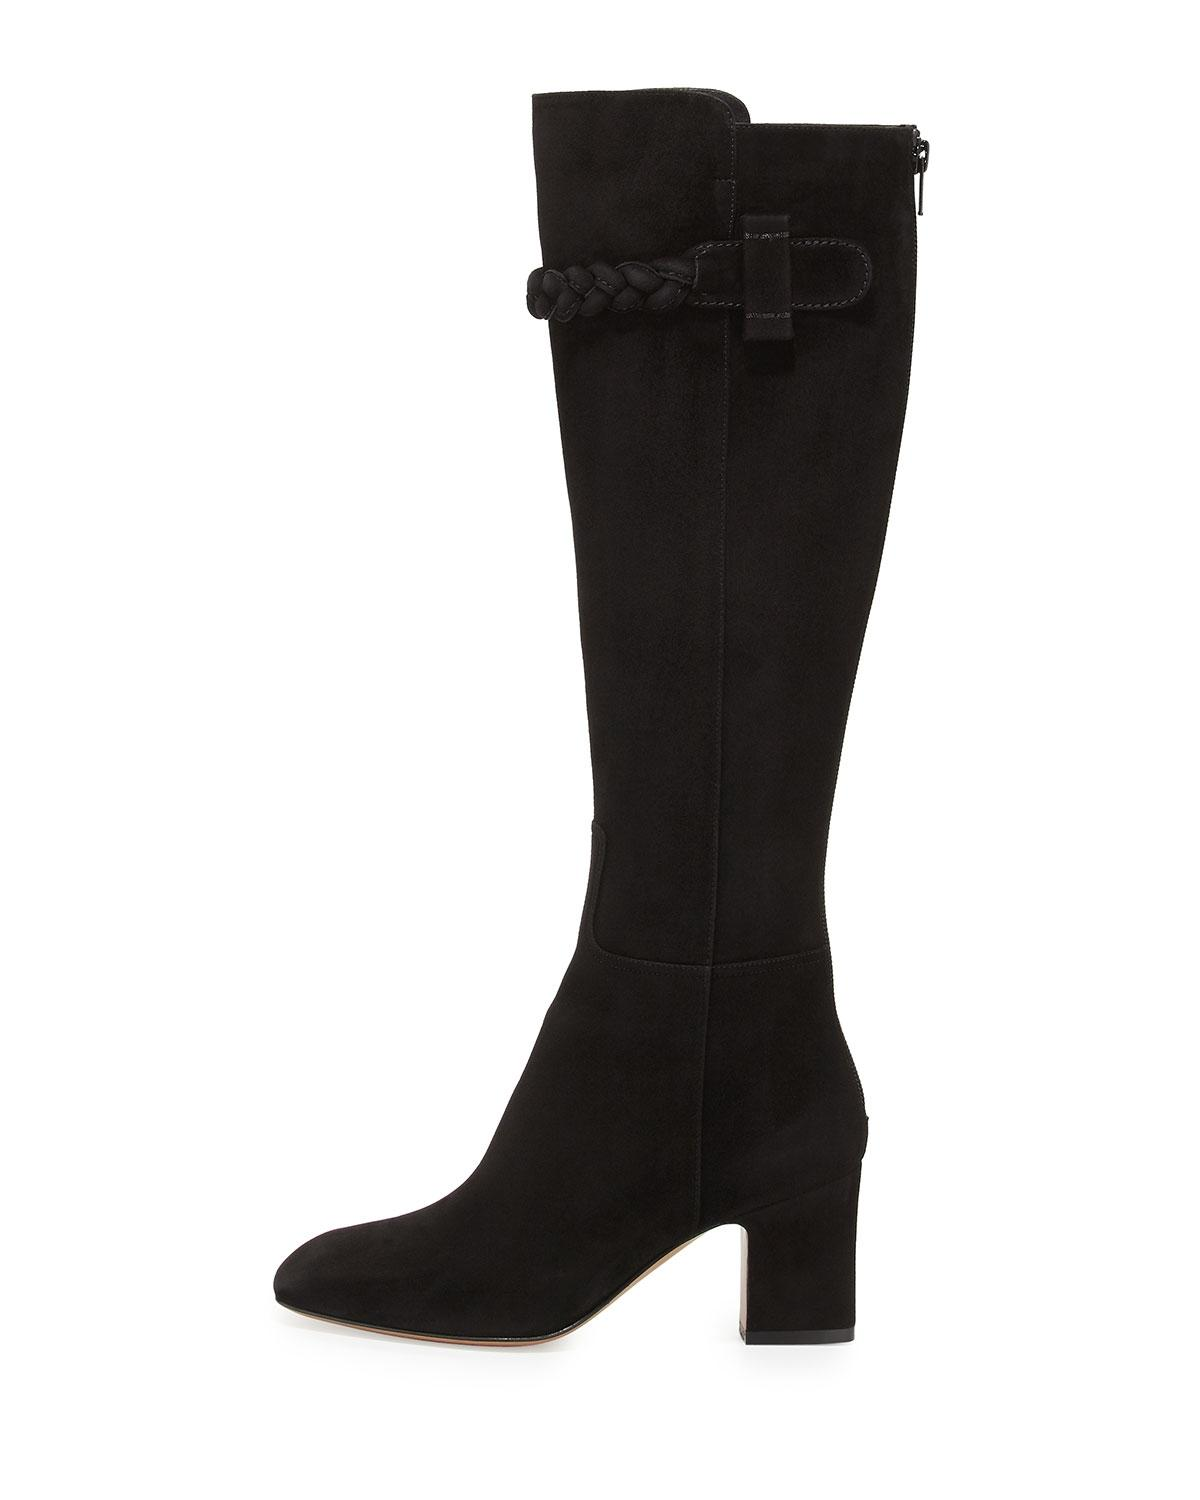 Valentino Black Nwb Braided Suede Knee 35/5 Boots/Booties Size EU 35 (Approx. US 5) Regular (M, B)